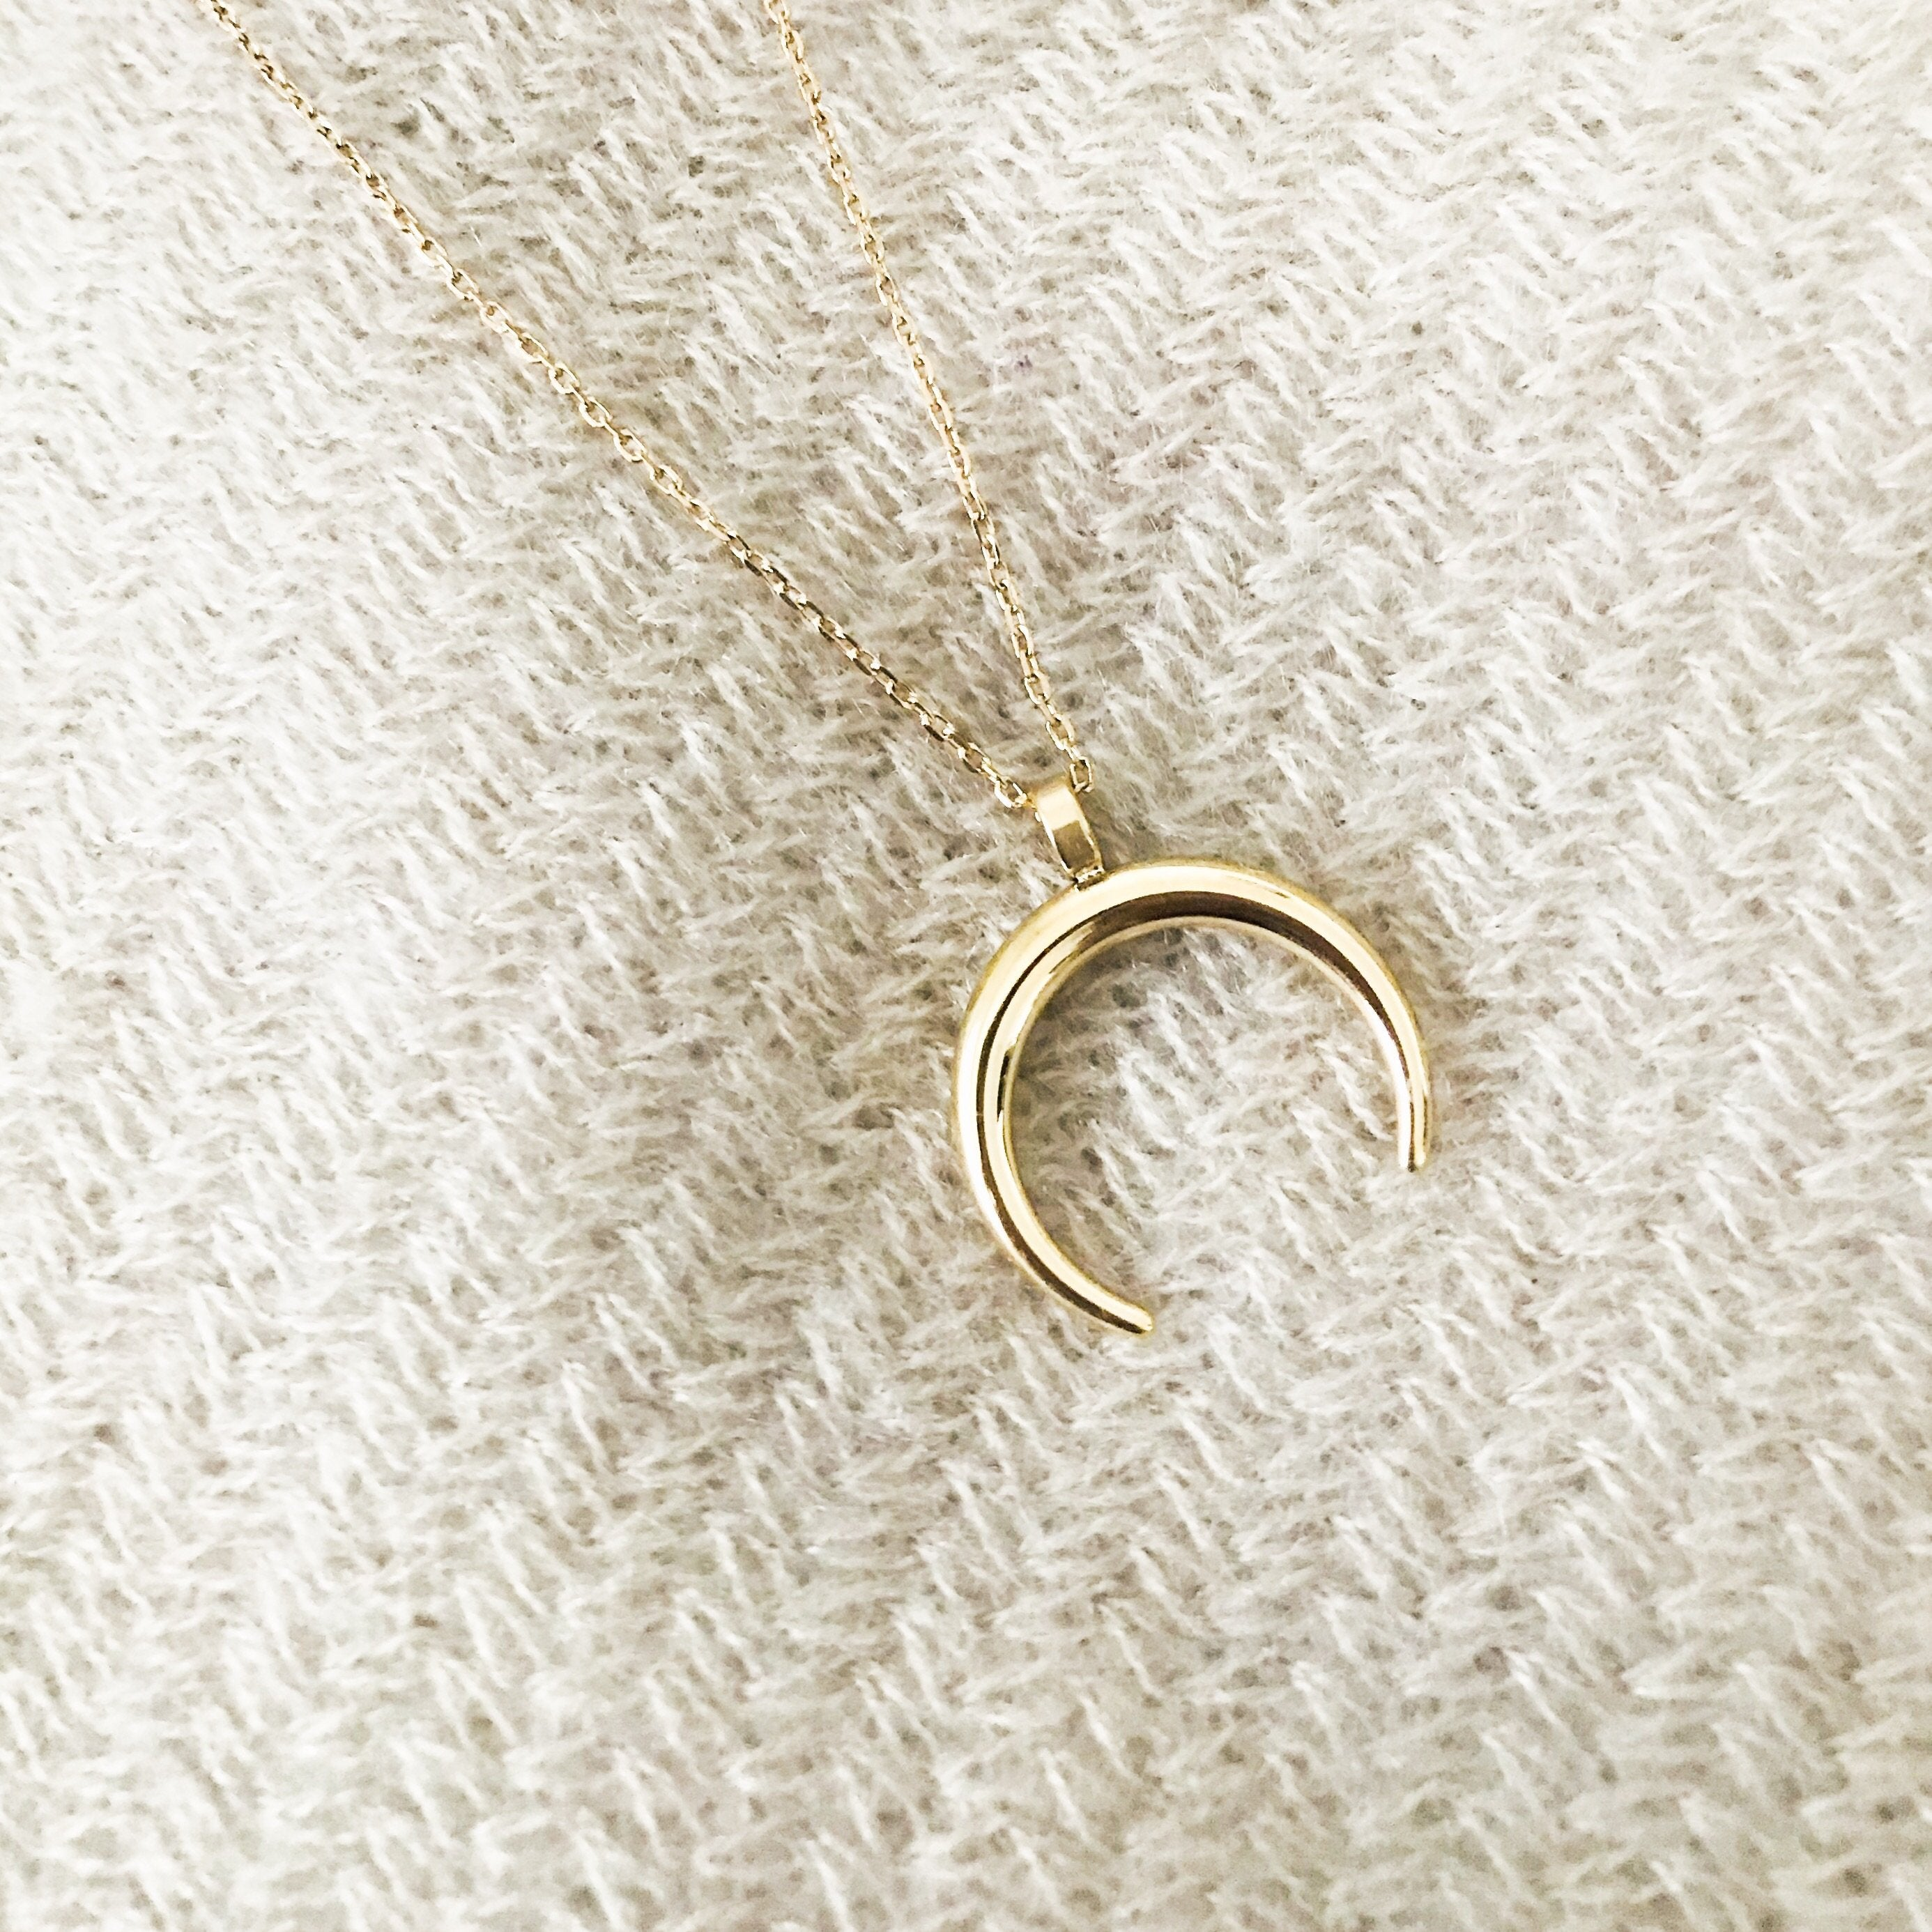 Gold Half Moon - Necklacescharm